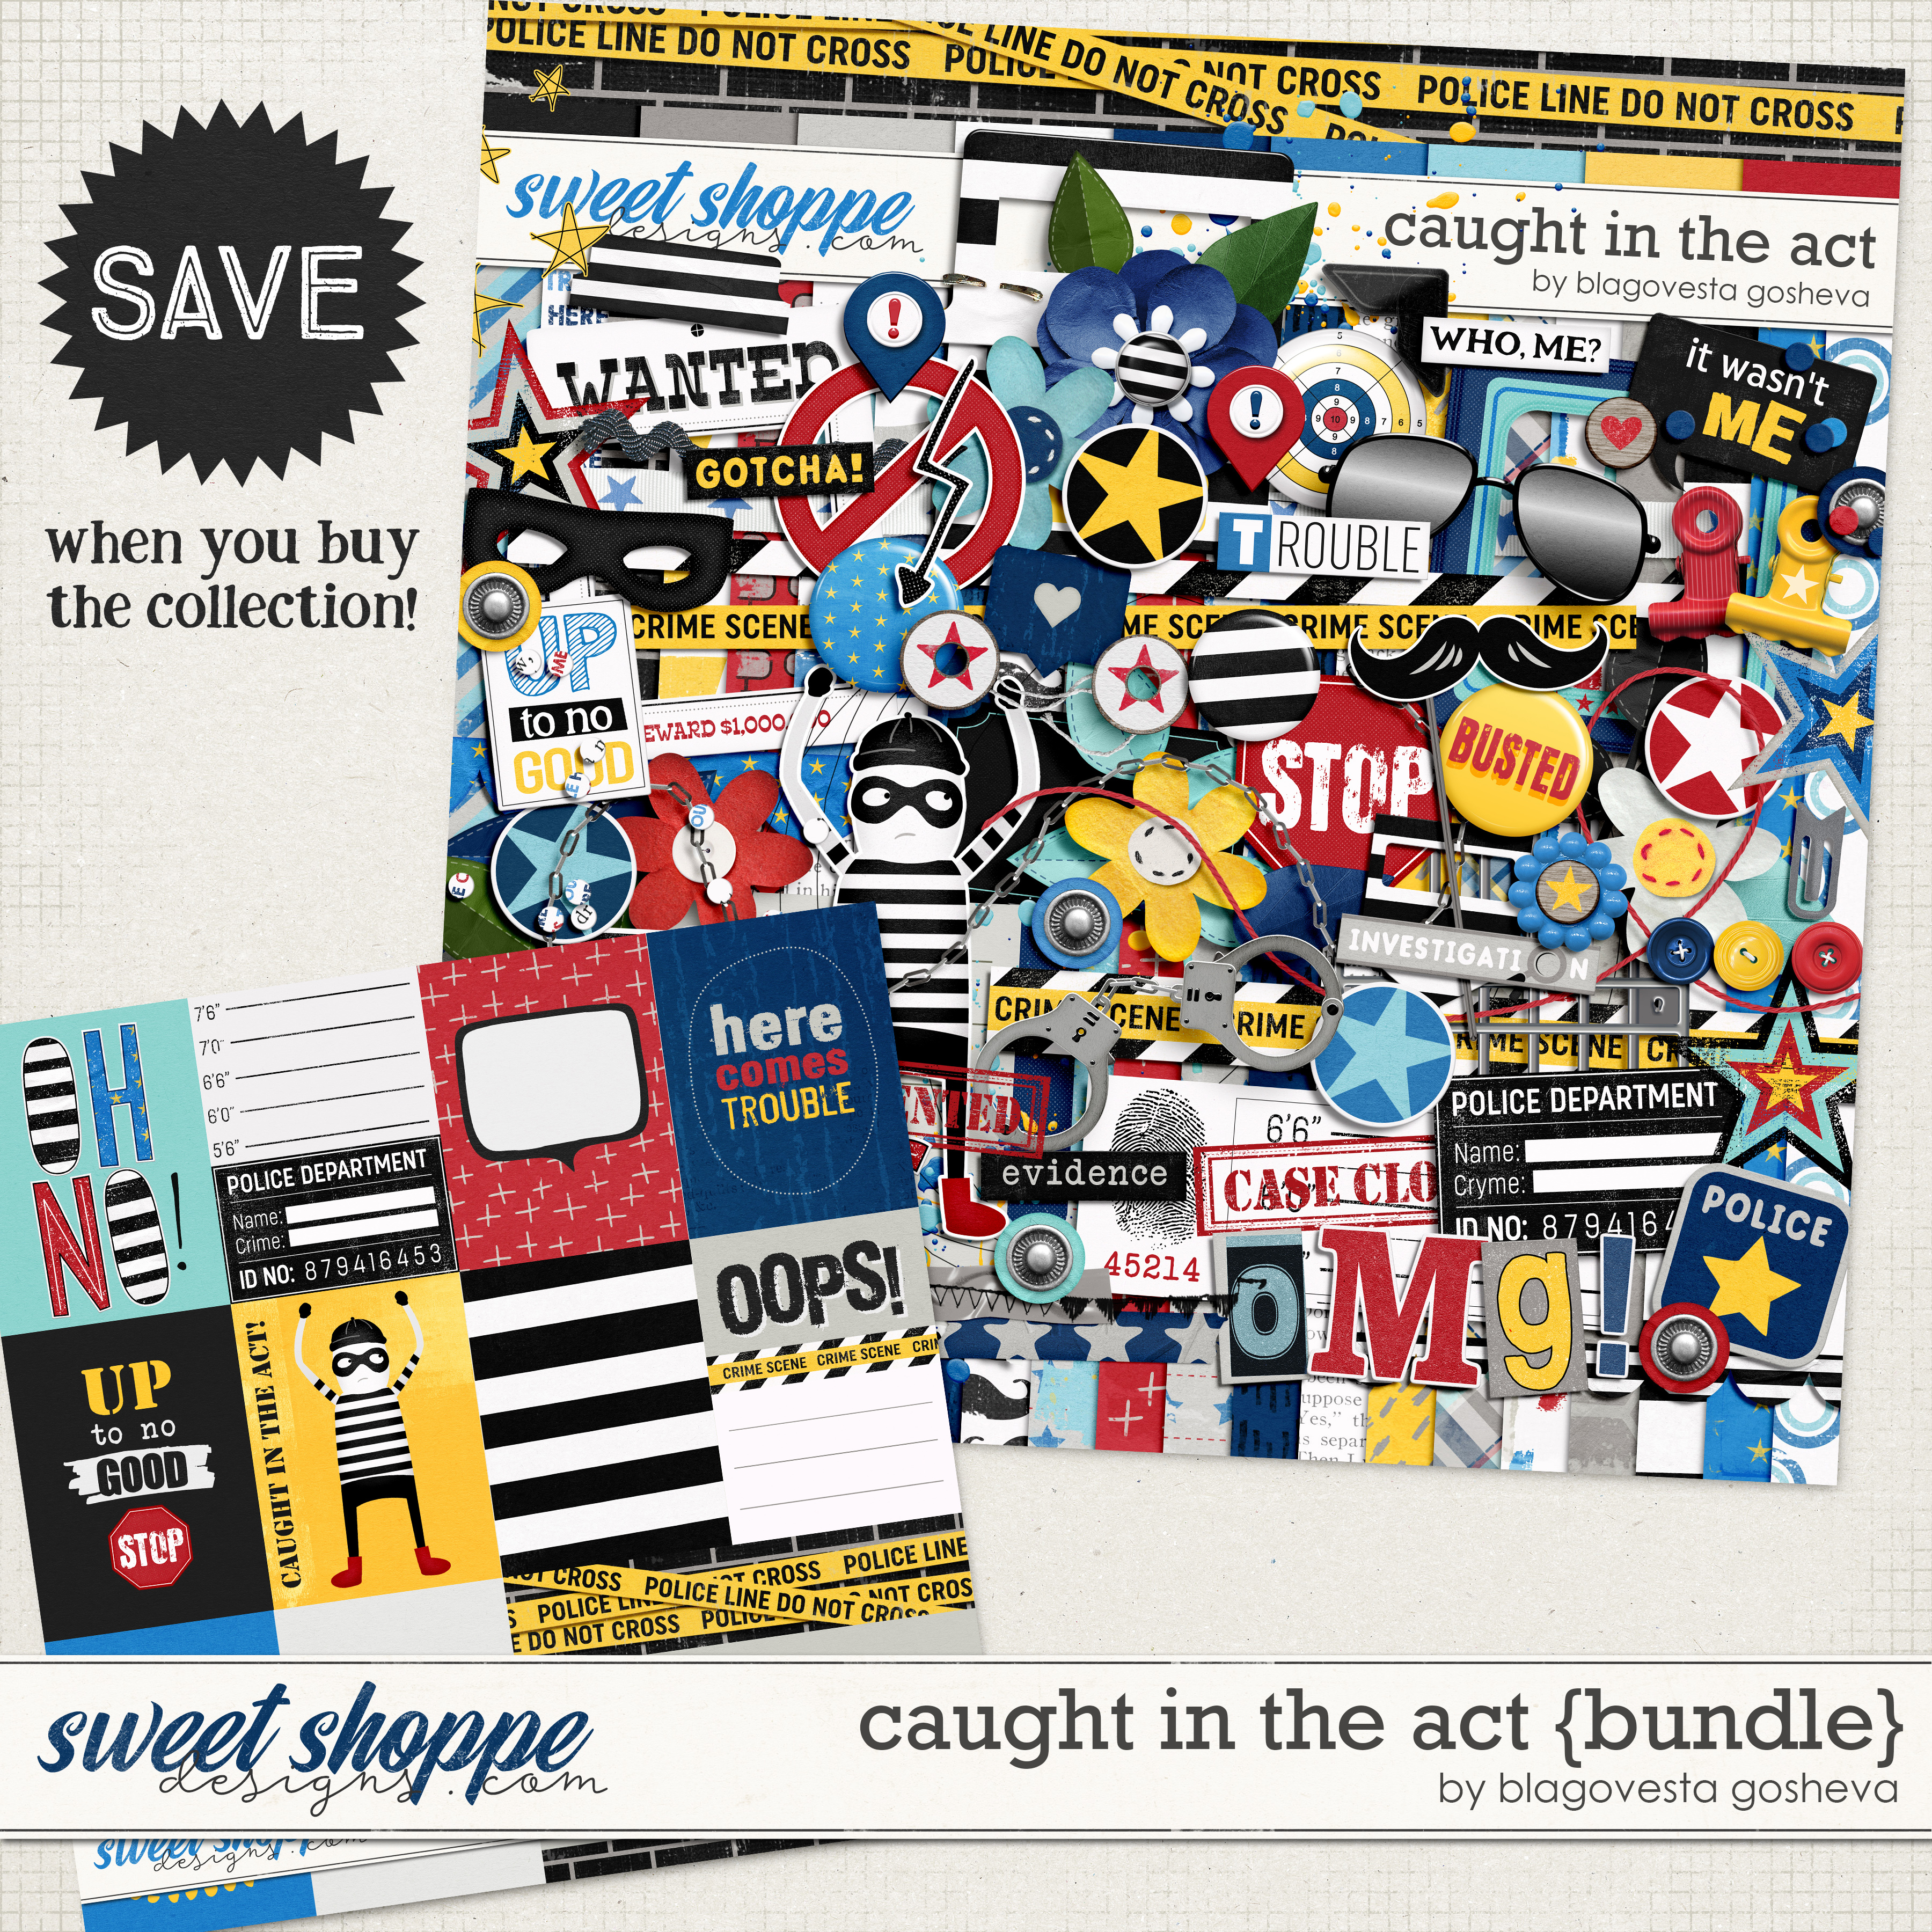 Caught in the act {bundle} by Blagovesta Gosheva